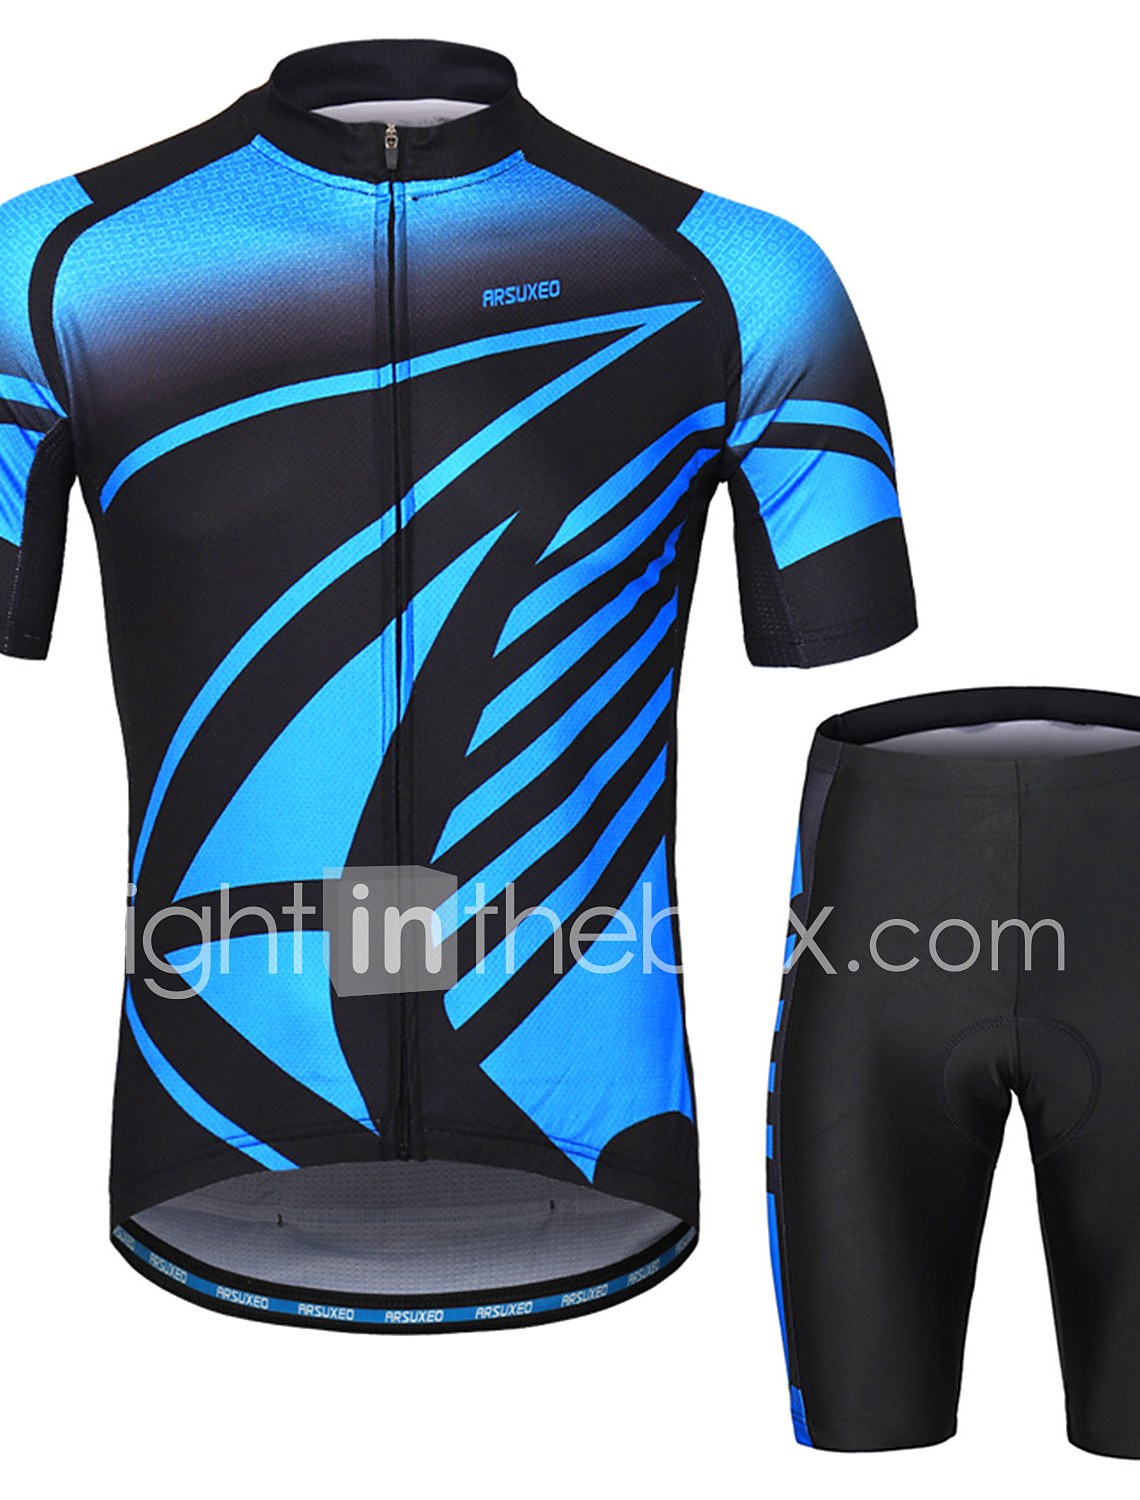 Arsuxeo Men s Short Sleeves Cycling Jersey with Shorts - Blue Bike Clothing  Suit 3D Pad Sports Painting Mountain Bike MTB Road Bike Cycling Clothing  Apparel ... 62f1bd248